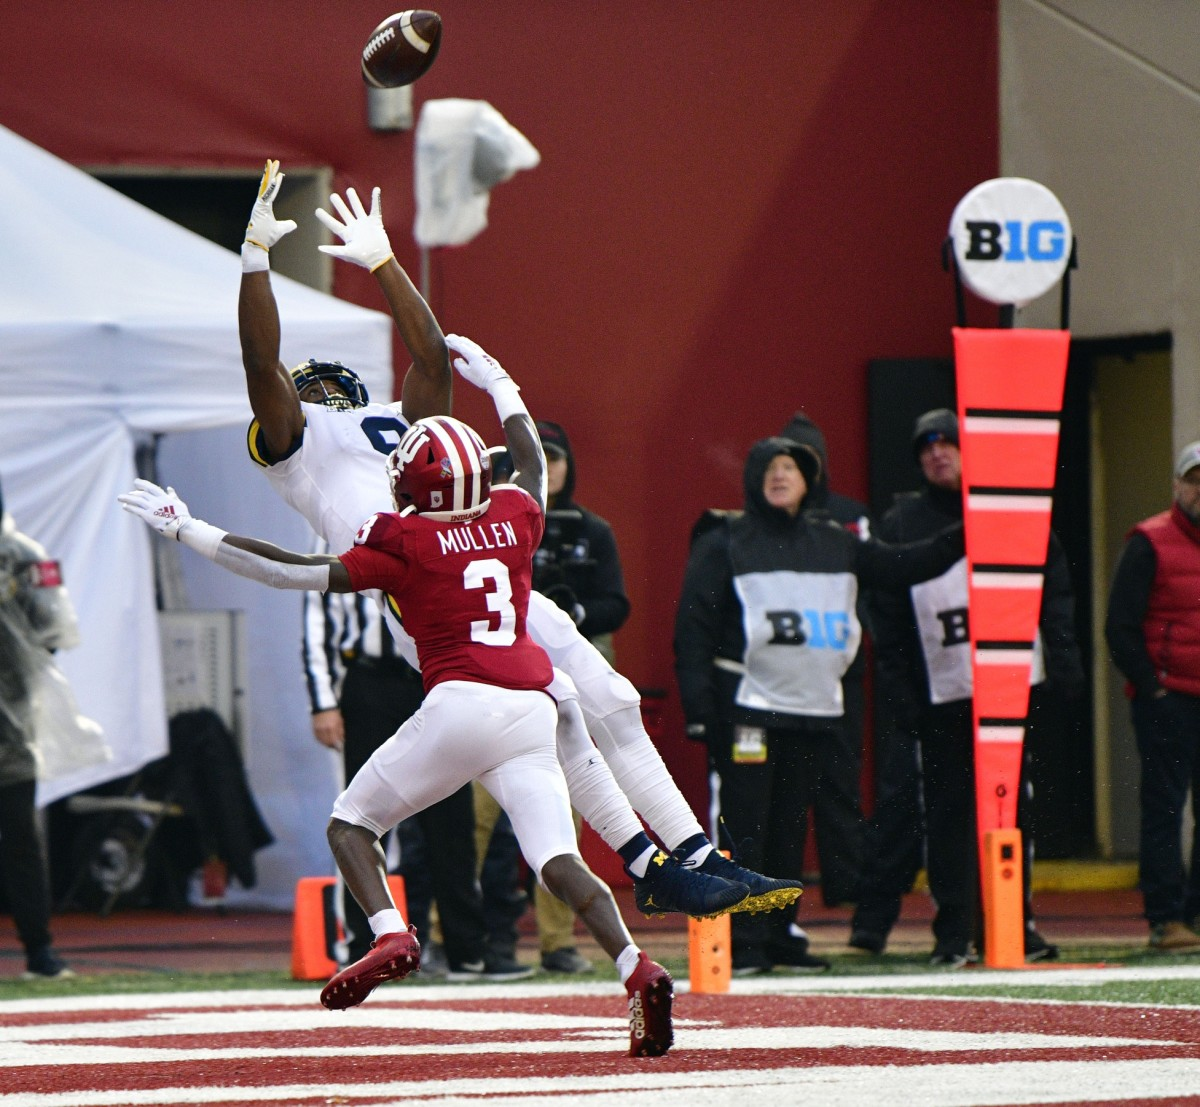 Michigan Wolverines wide receiver Donovan Peoples-Jones (9) catches a ball for a touchdown under coverage from Indiana Hoosiers defensive back Tiawan Mullen (3) during the first half of the game at Memorial Stadium . Mandatory Credit: Marc Lebryk-USA TODAY Sports